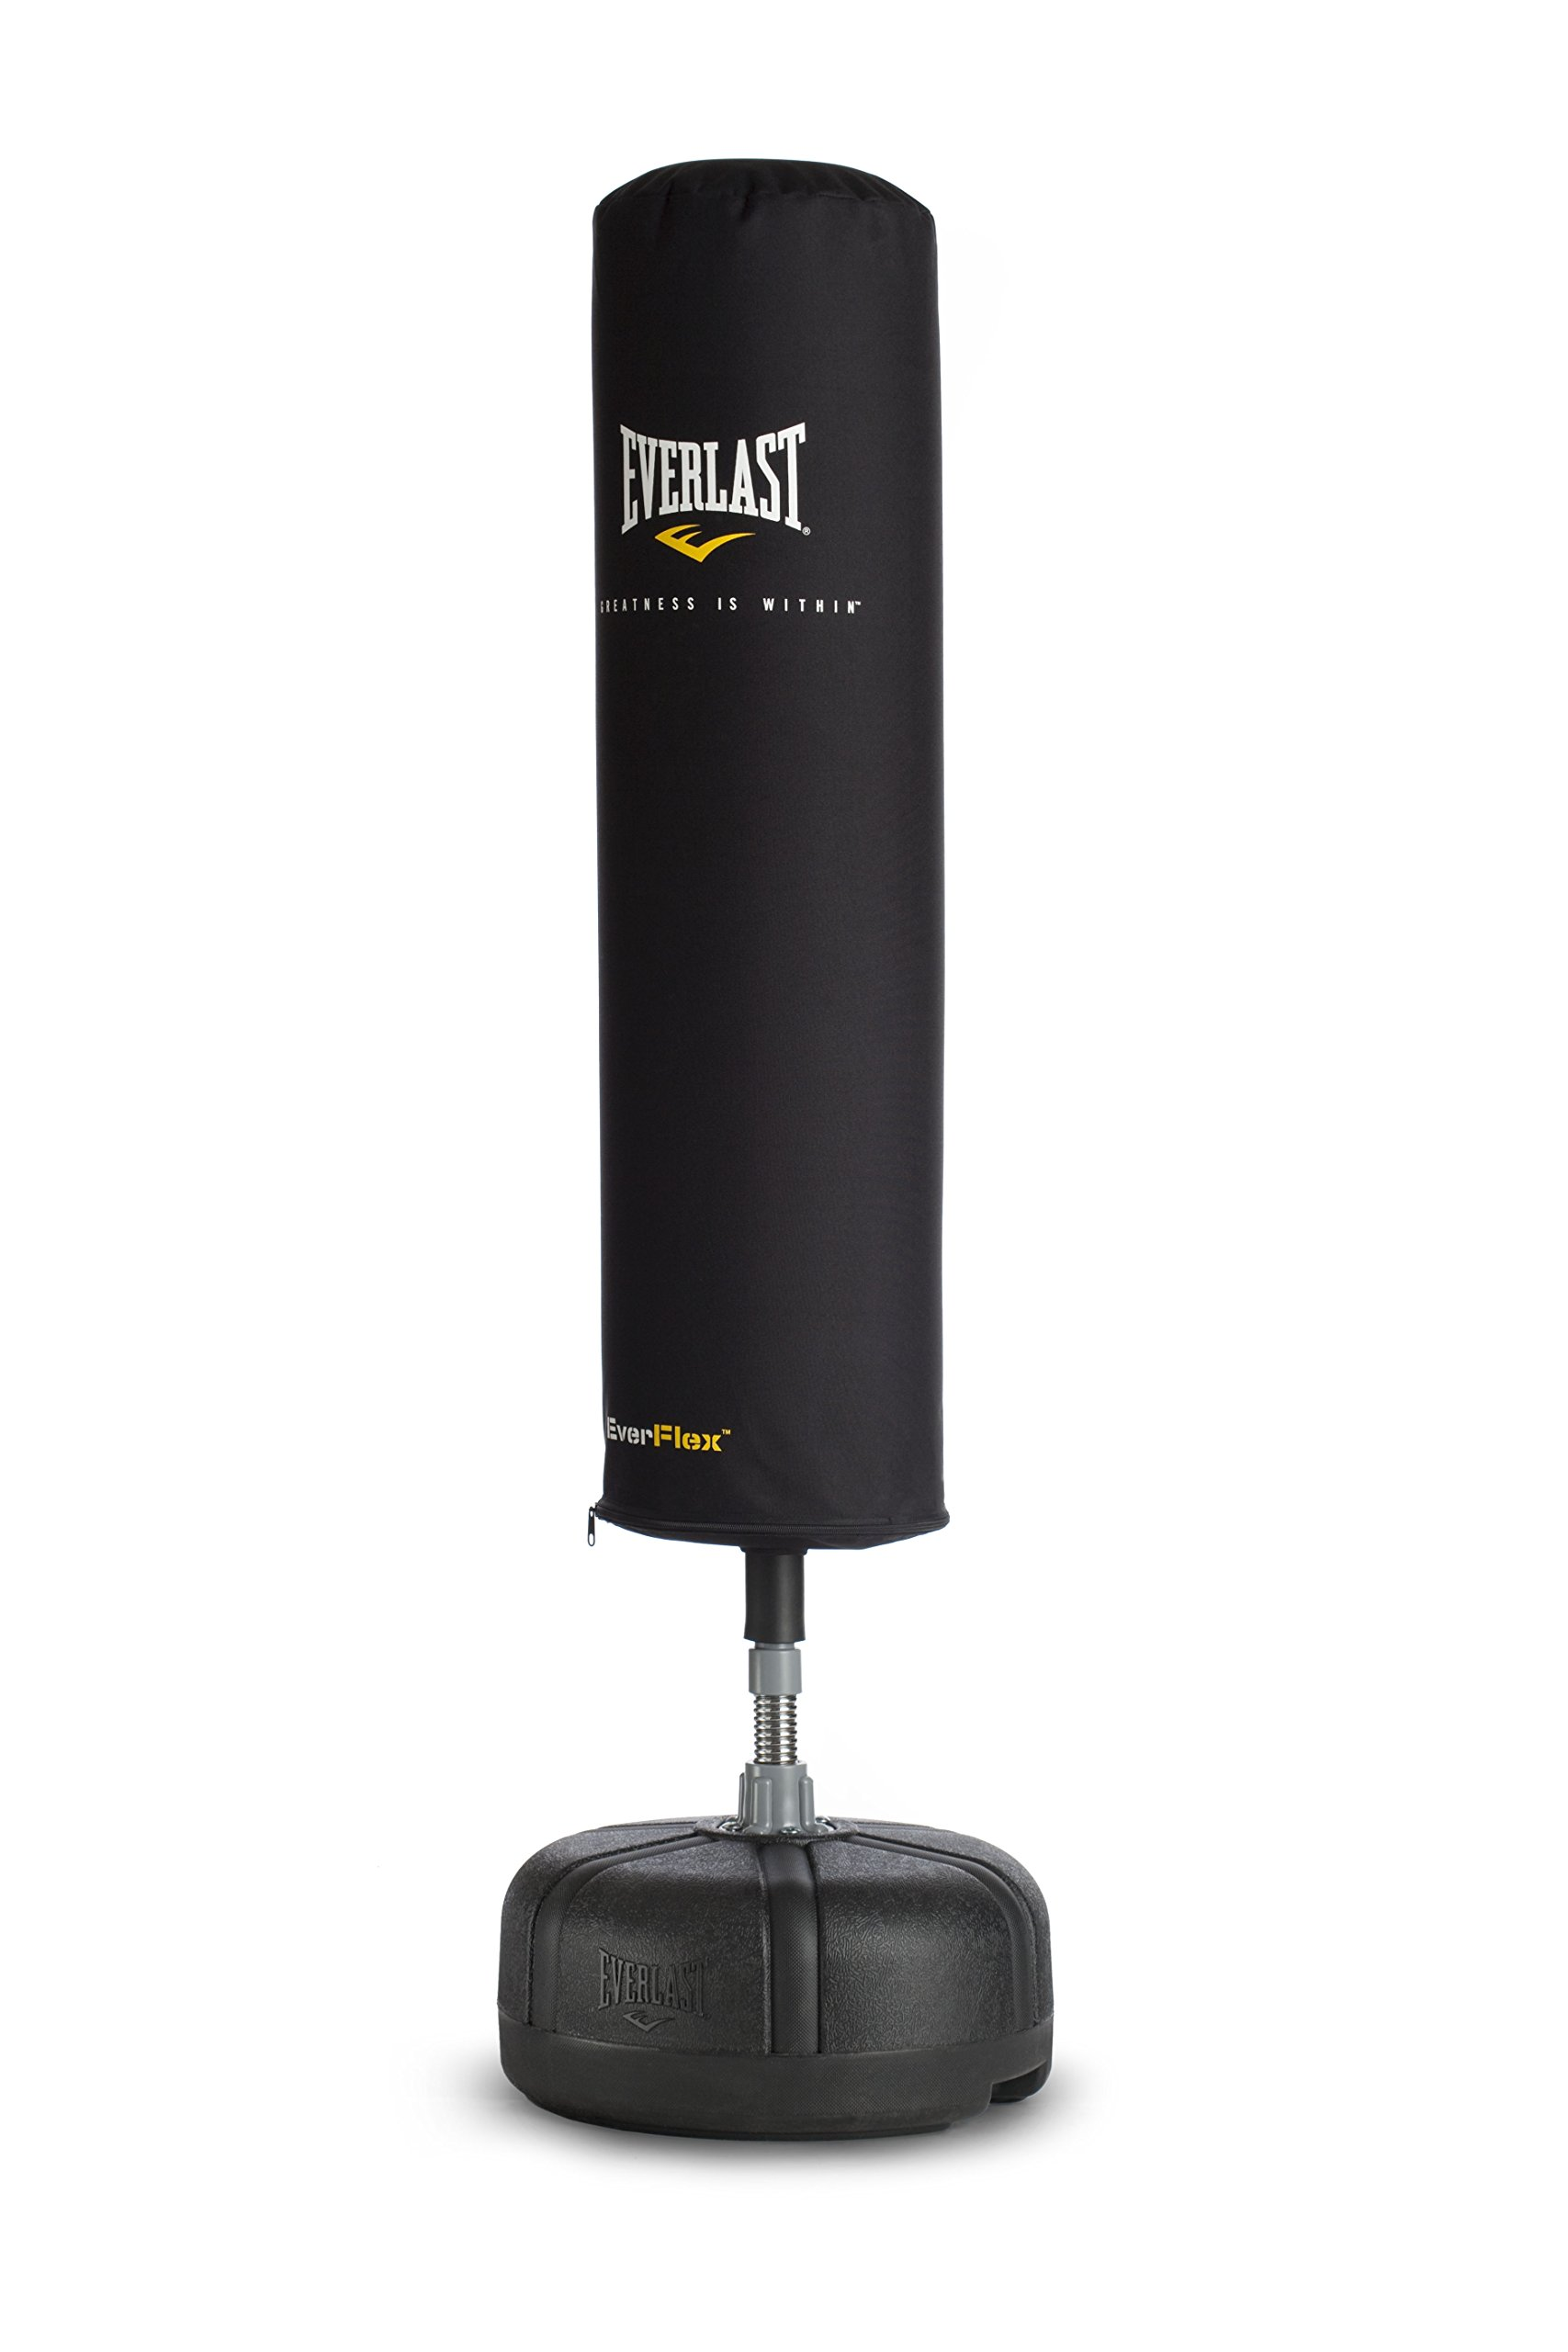 Everlast 2262 Adults' Floor-Standing Punching Bag - 1 Size - Black by Everlast